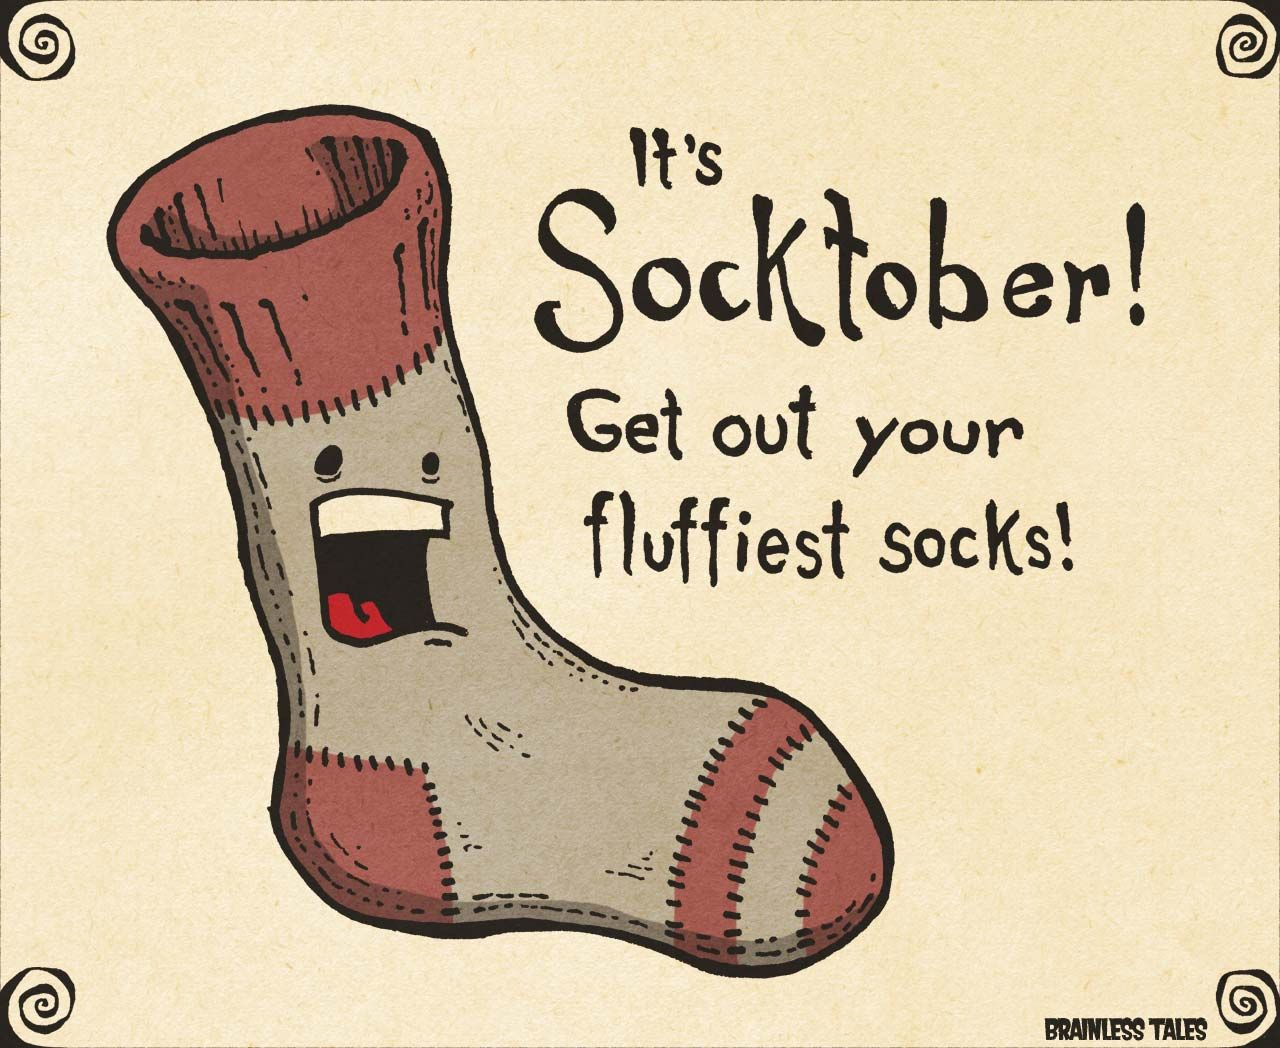 Socktober School campaign posters, Kindness projects